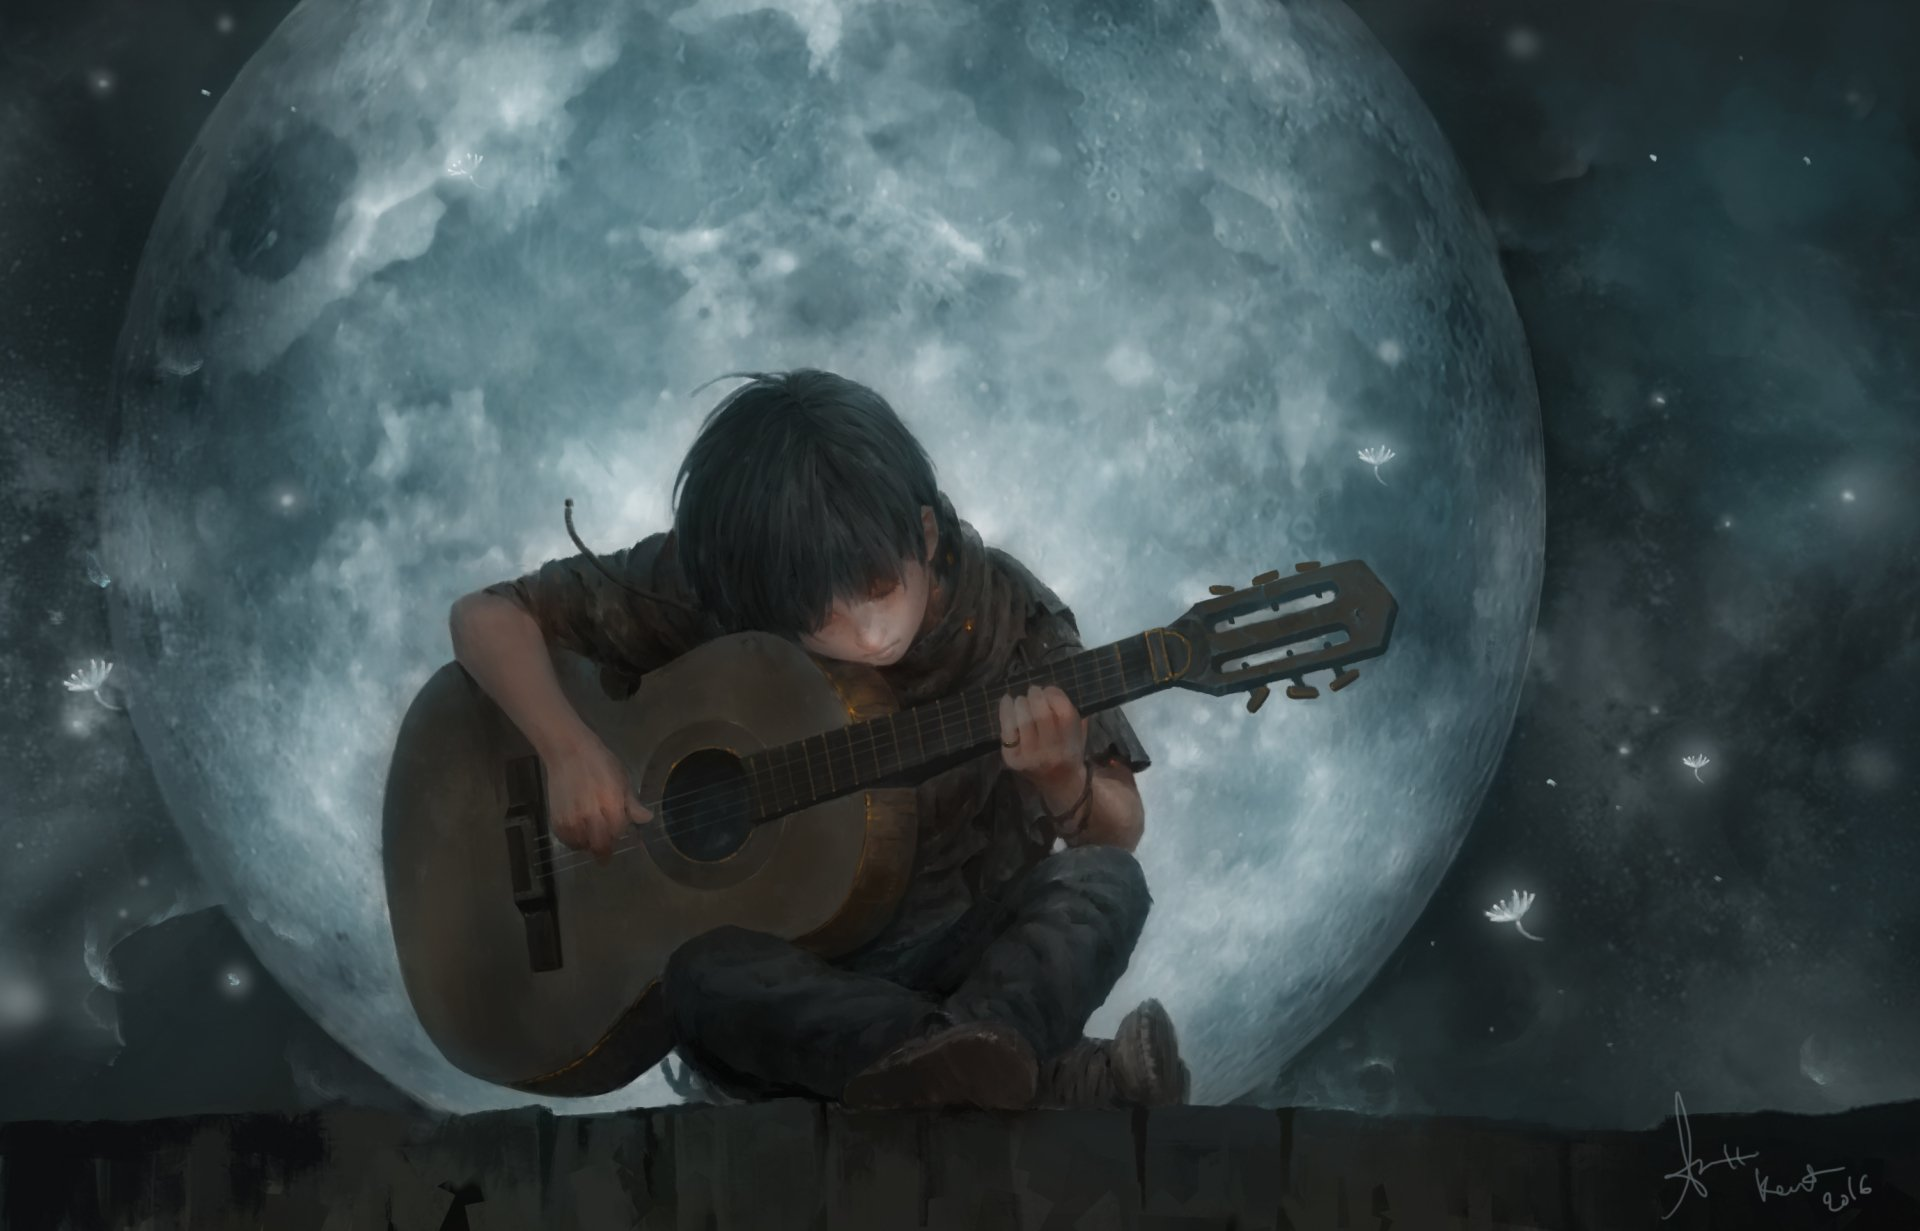 Artistic - Child  Artistic Boy Little Boy Moon Night Guitar Wallpaper